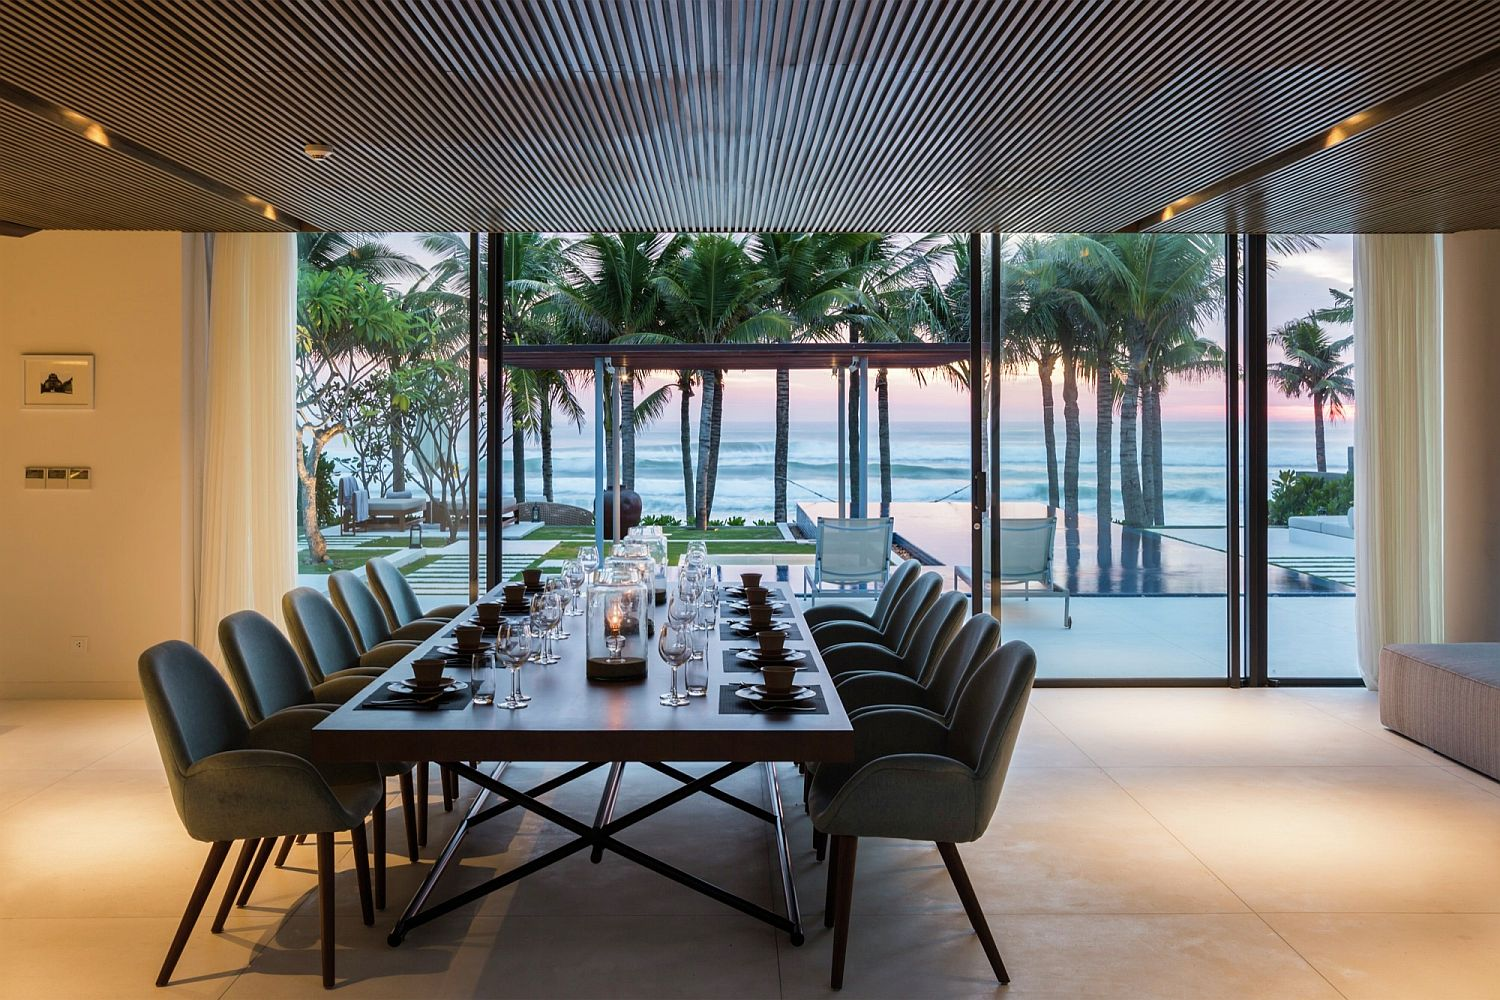 Exquisite dining room with a view of the sea and pool and deck outside